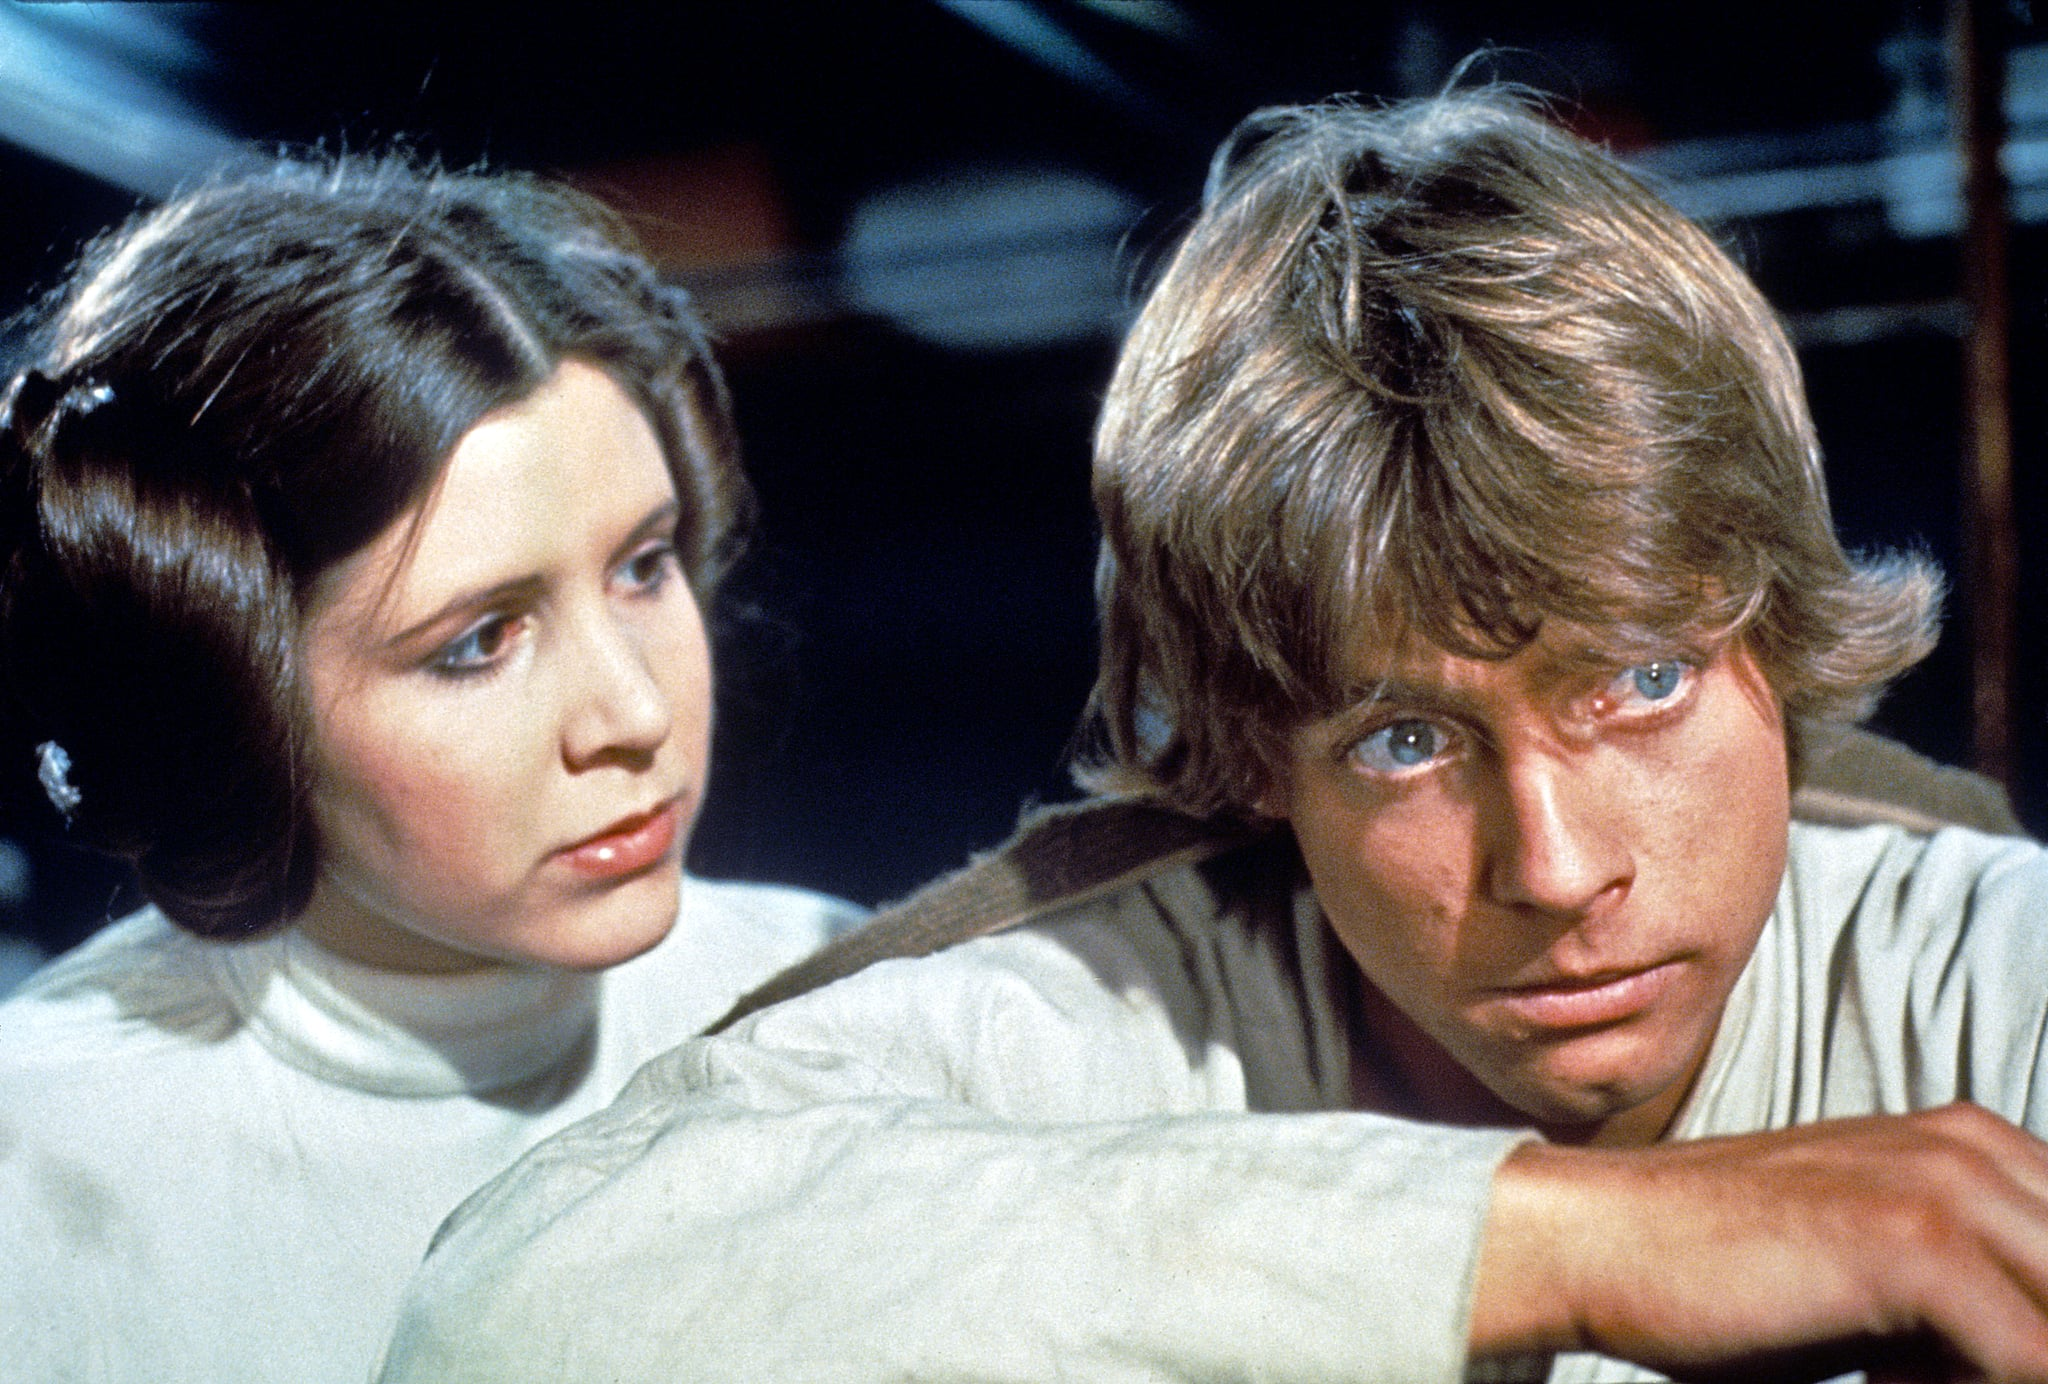 STAR WARS, (aka STAR WARS: EPISODE IV - A NEW HOPE), Carrie Fisher, Mark Hamill, 1977